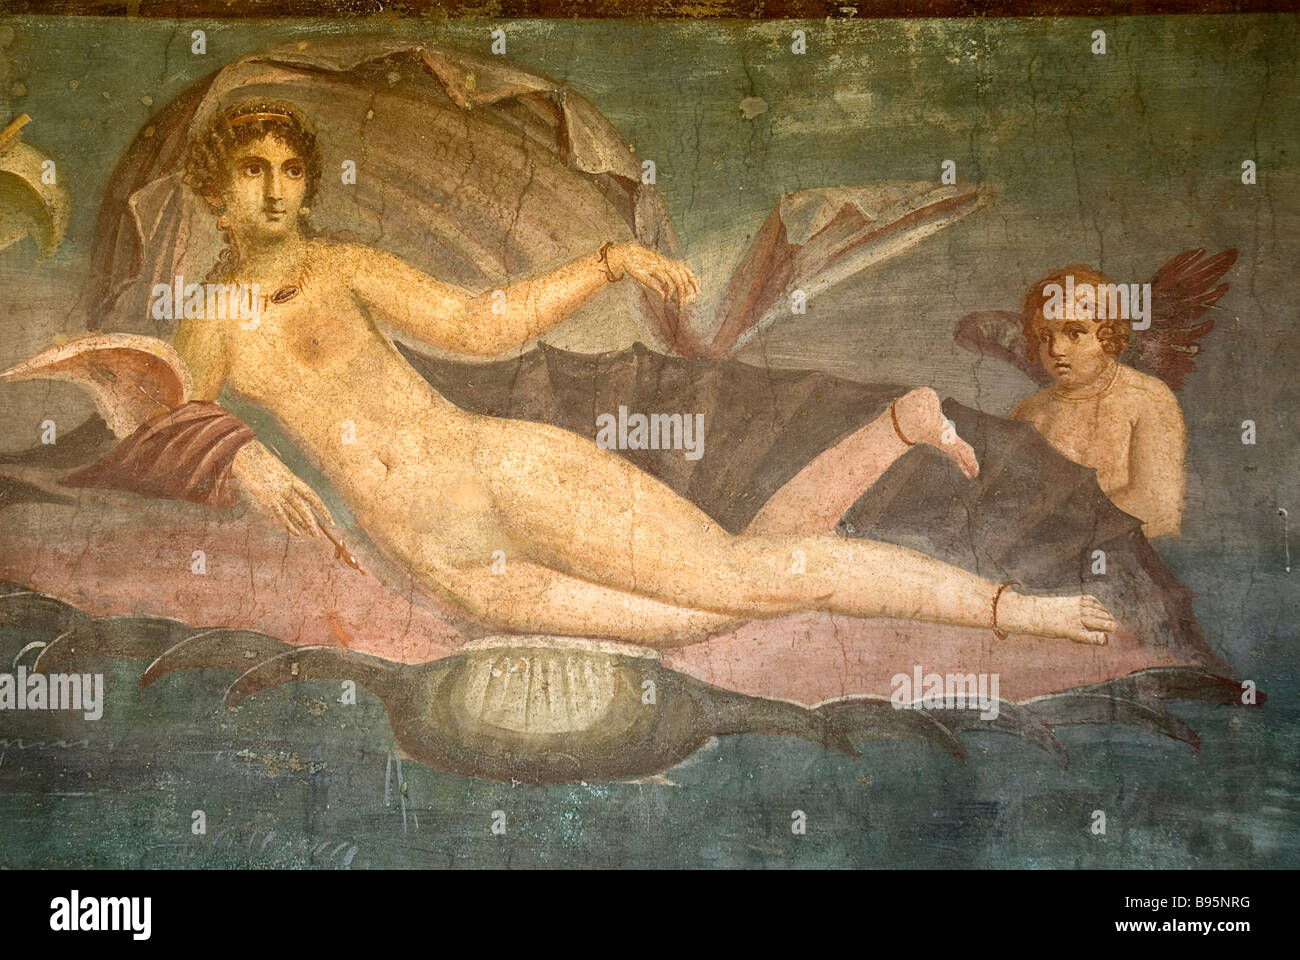 Italy, Campania, Napoli, Pompeii. Fresco giving name to the House of Venus depicting Venus in a half shell accompanied - Stock Image